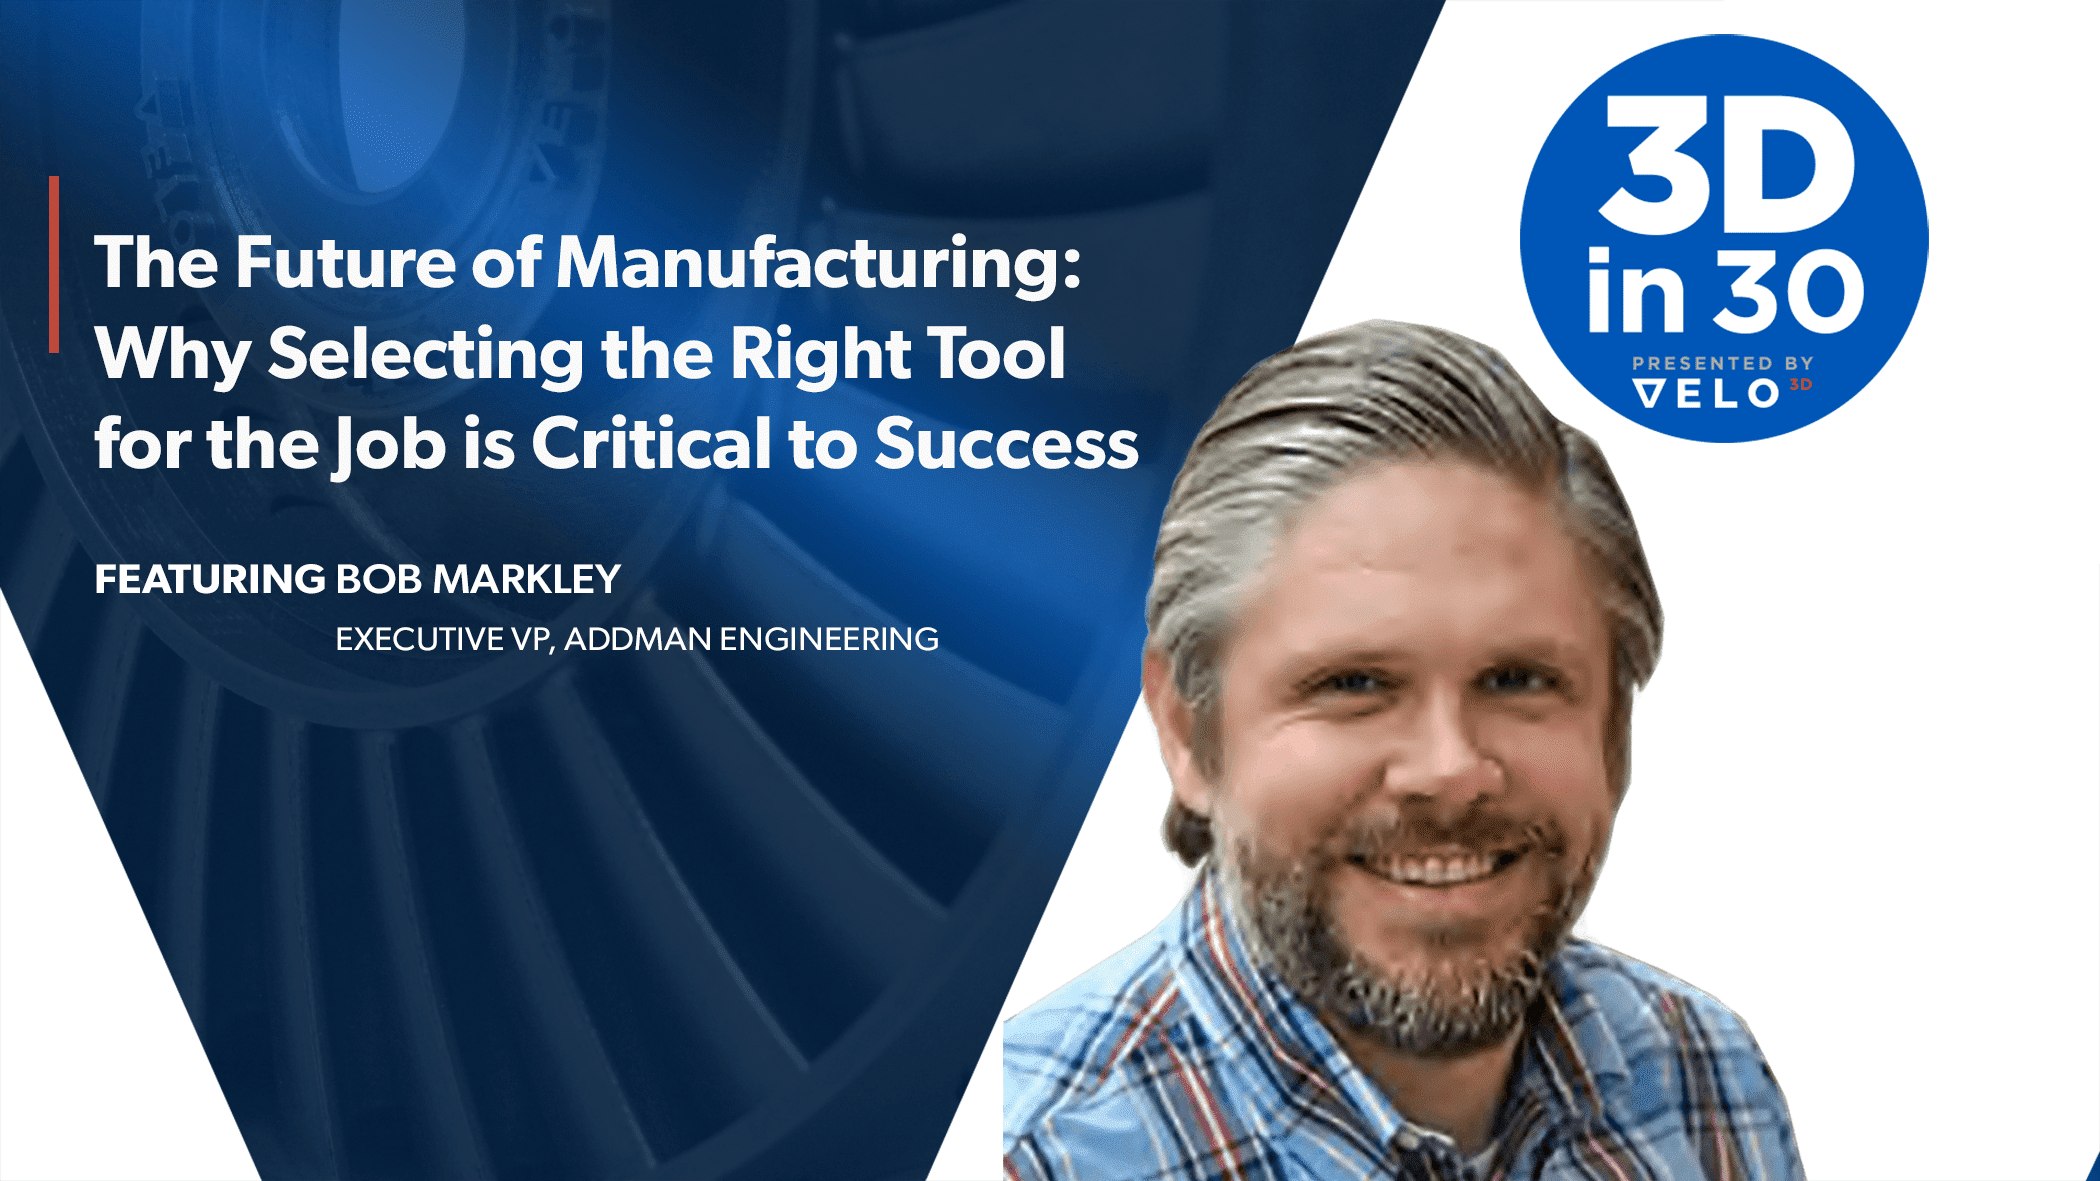 3Din30 Episode 6: Why Selecting the Right Tool for the Job is Critical to Success